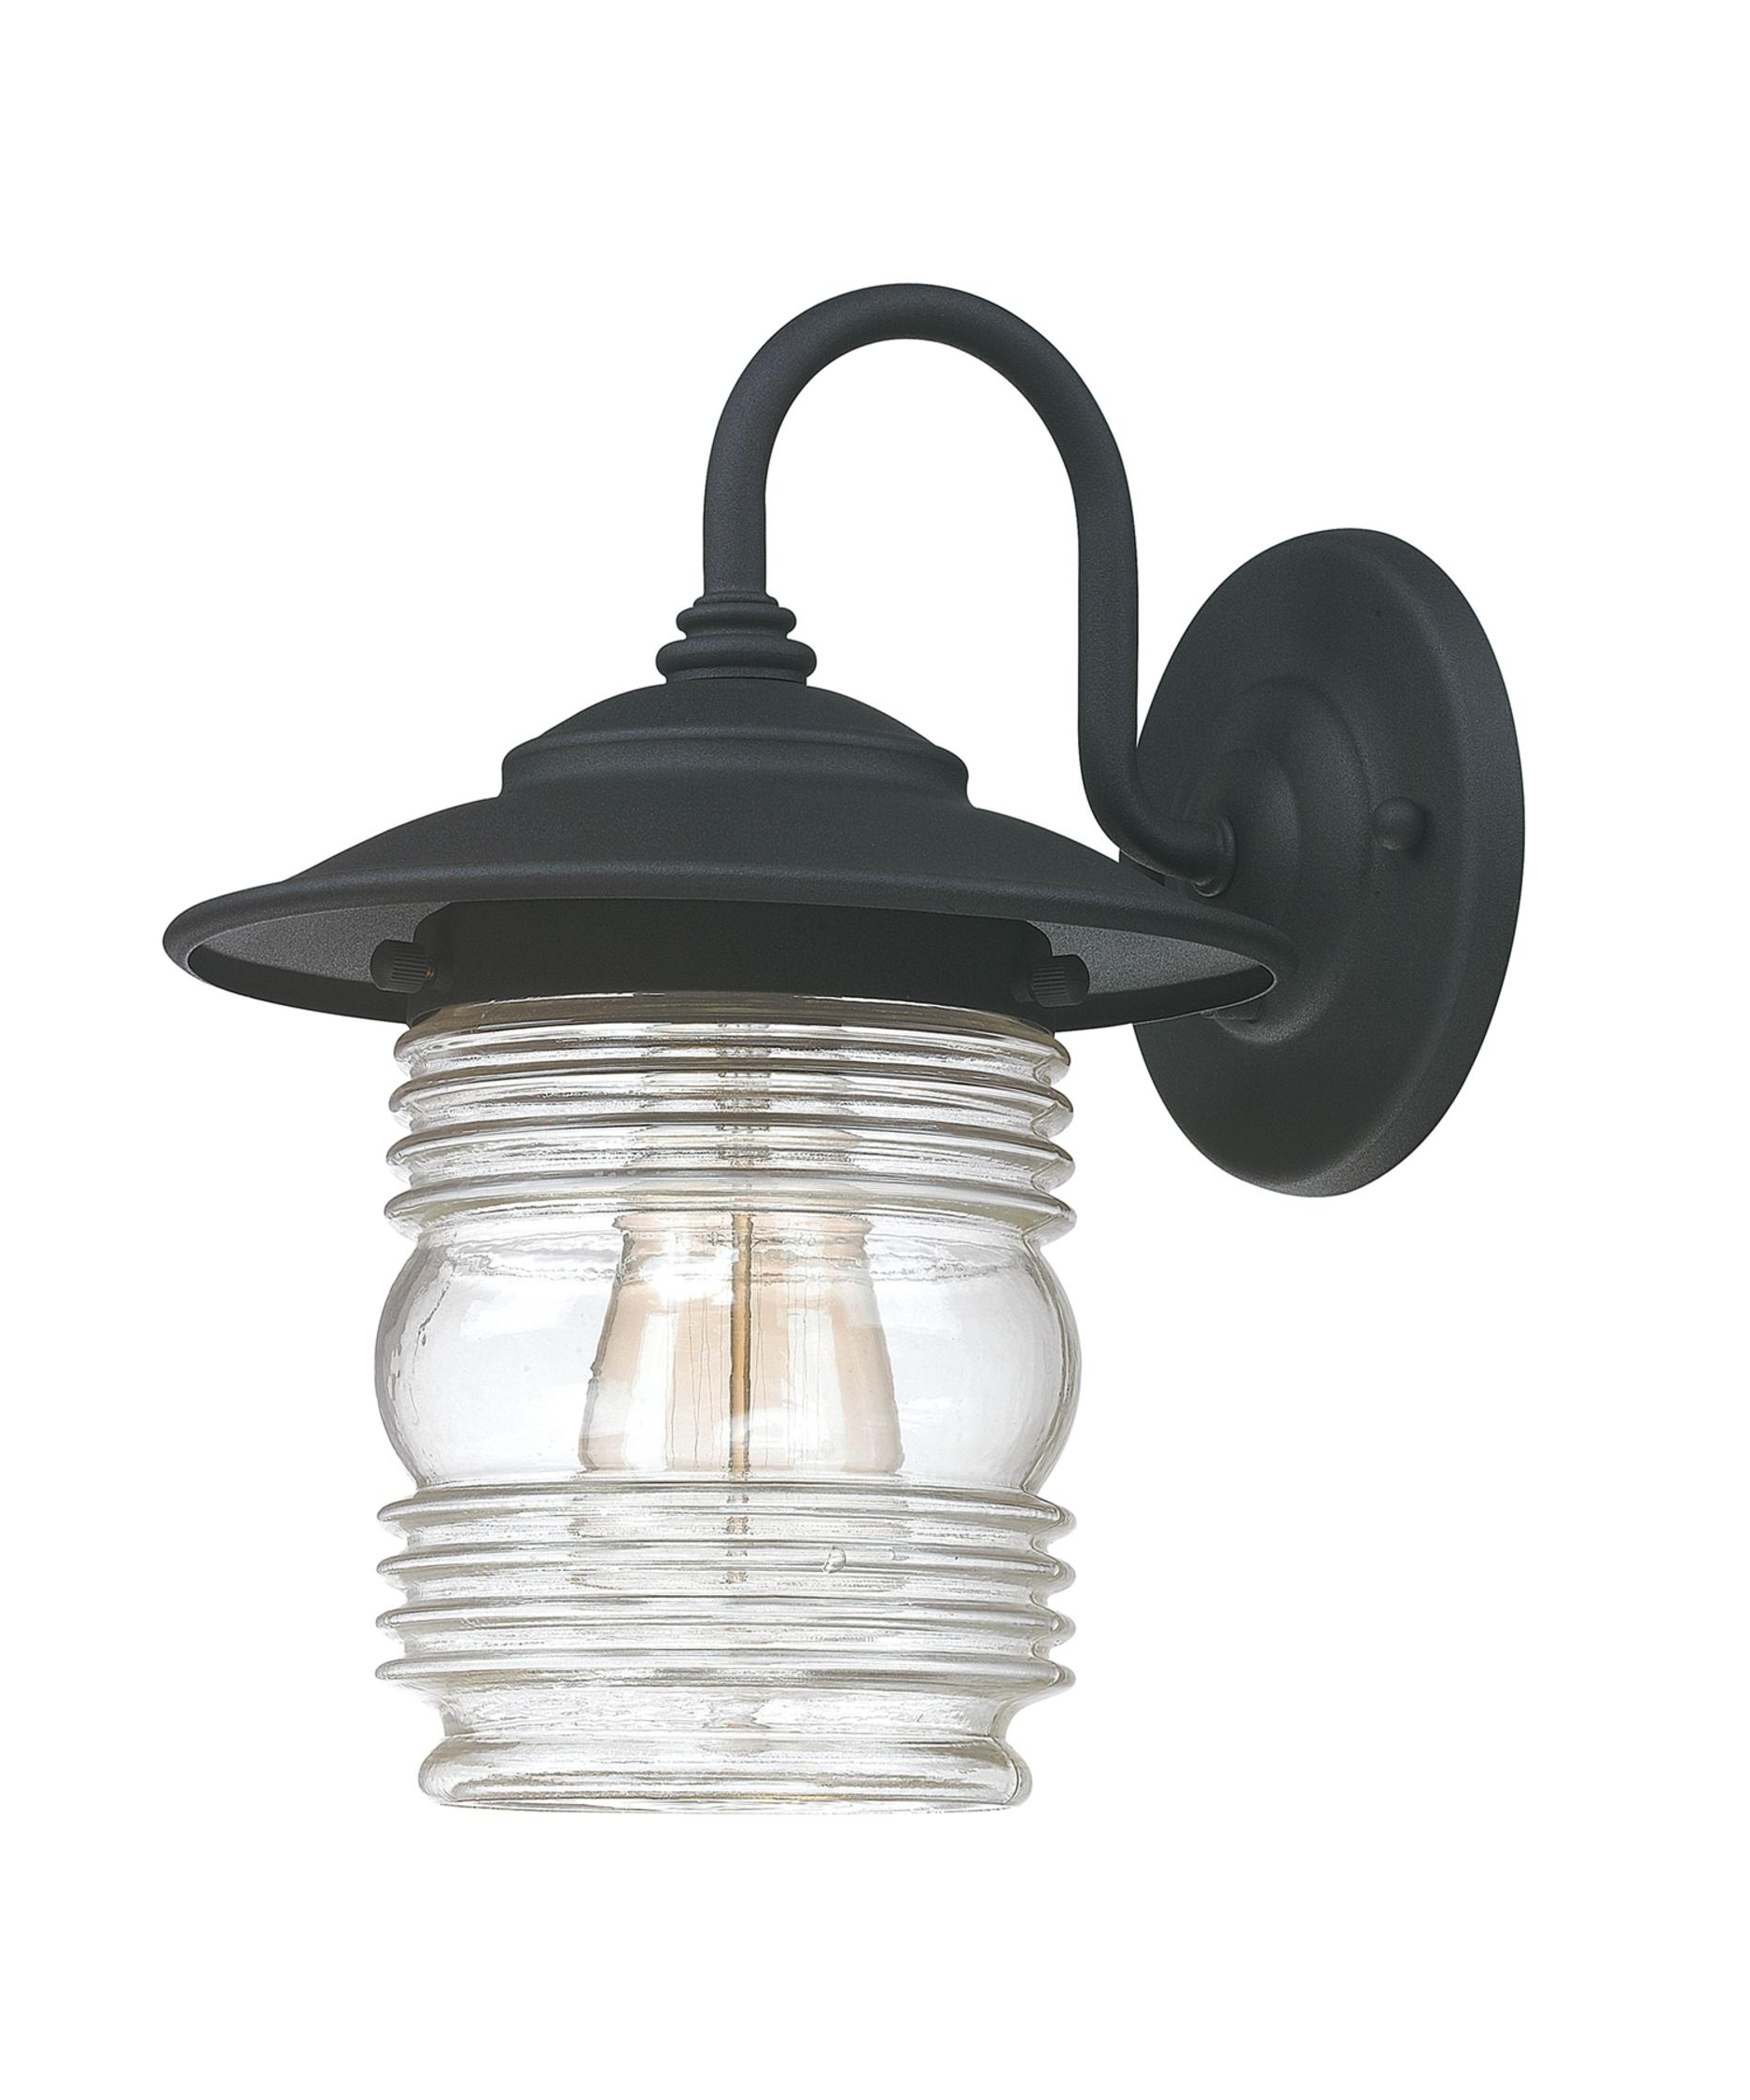 Capital Lighting 9671 Creekside 8 Inch Wide 1 Light Outdoor Wall Within Newest Retro Outdoor Wall Lighting (View 4 of 20)